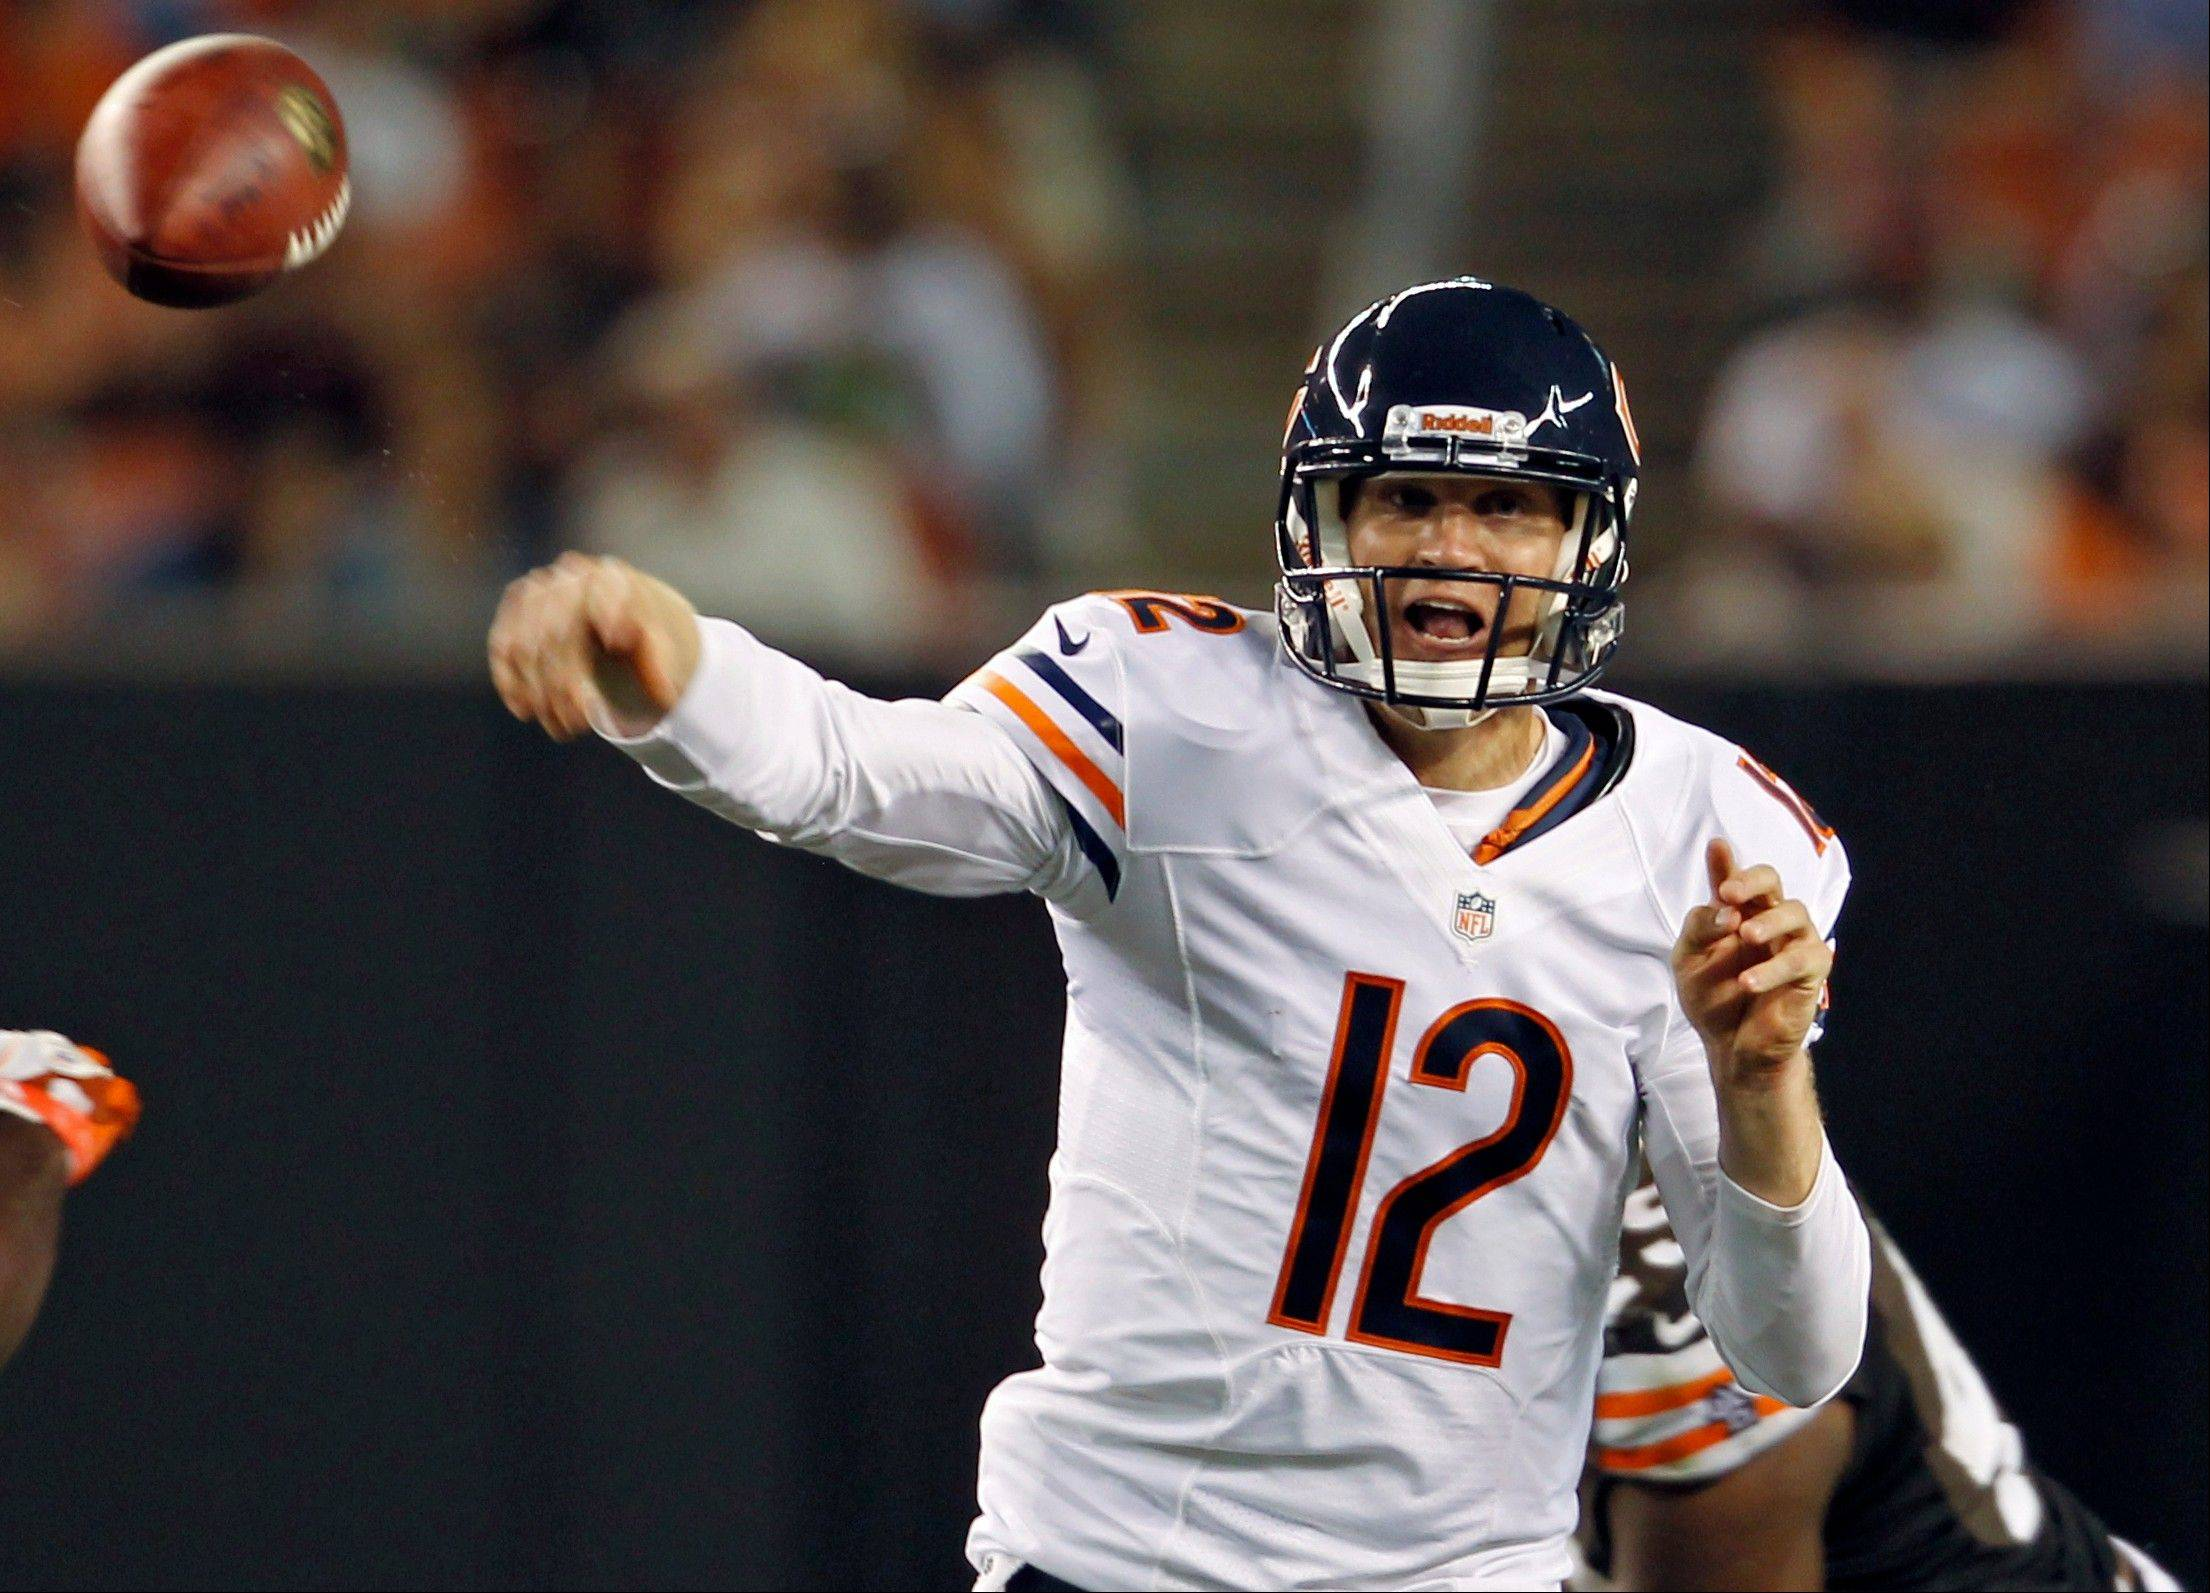 Chicago Bears quarterback Josh McCown throws a pass against the Cleveland Browns in the third quarter of a preseason NFL football game, Thursday, Aug. 30, 2012, in Cleveland.